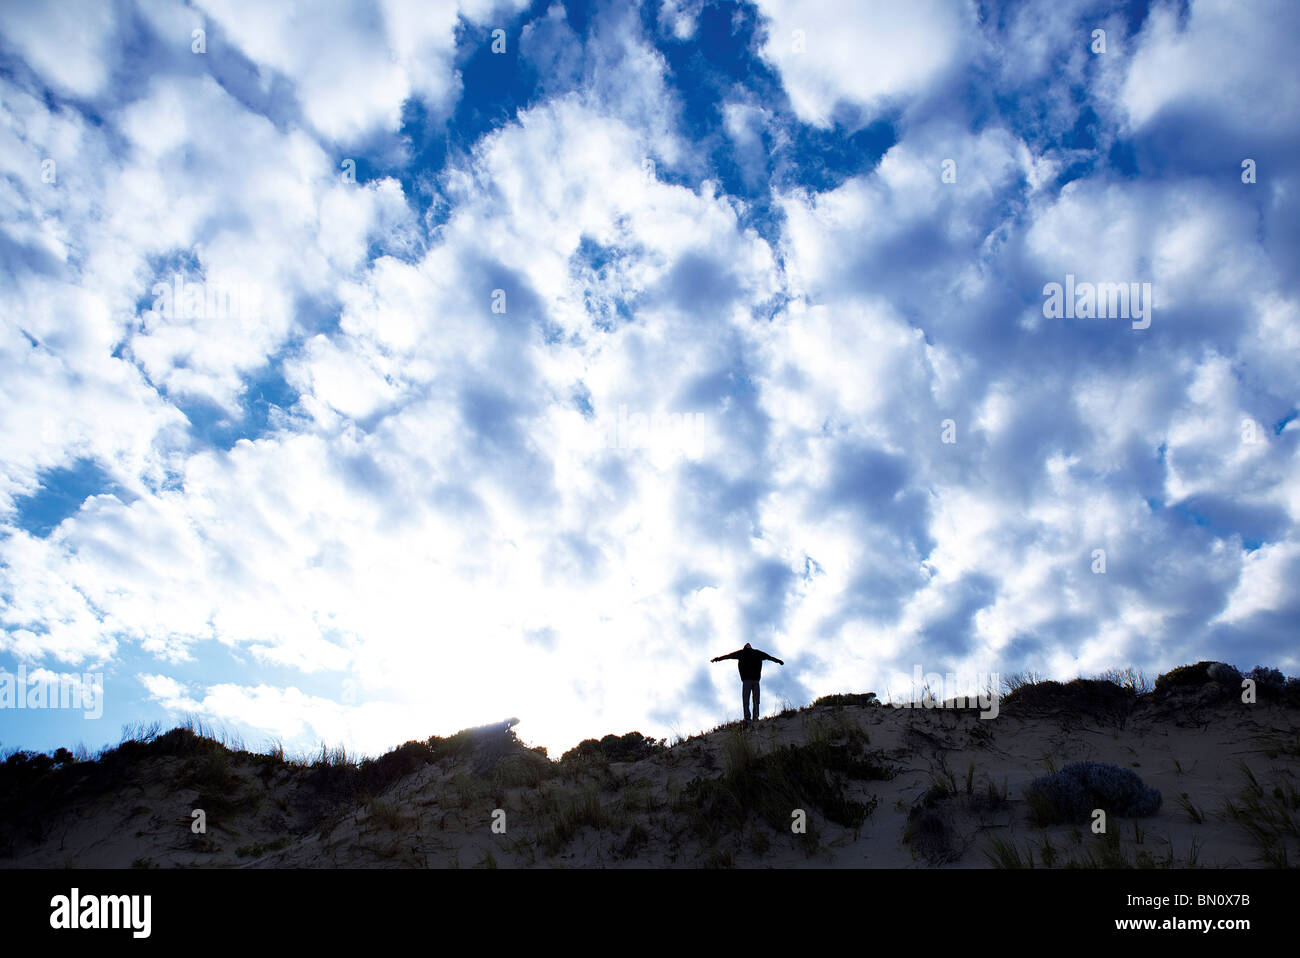 Young guy on dunes in silhouette - Stock Image